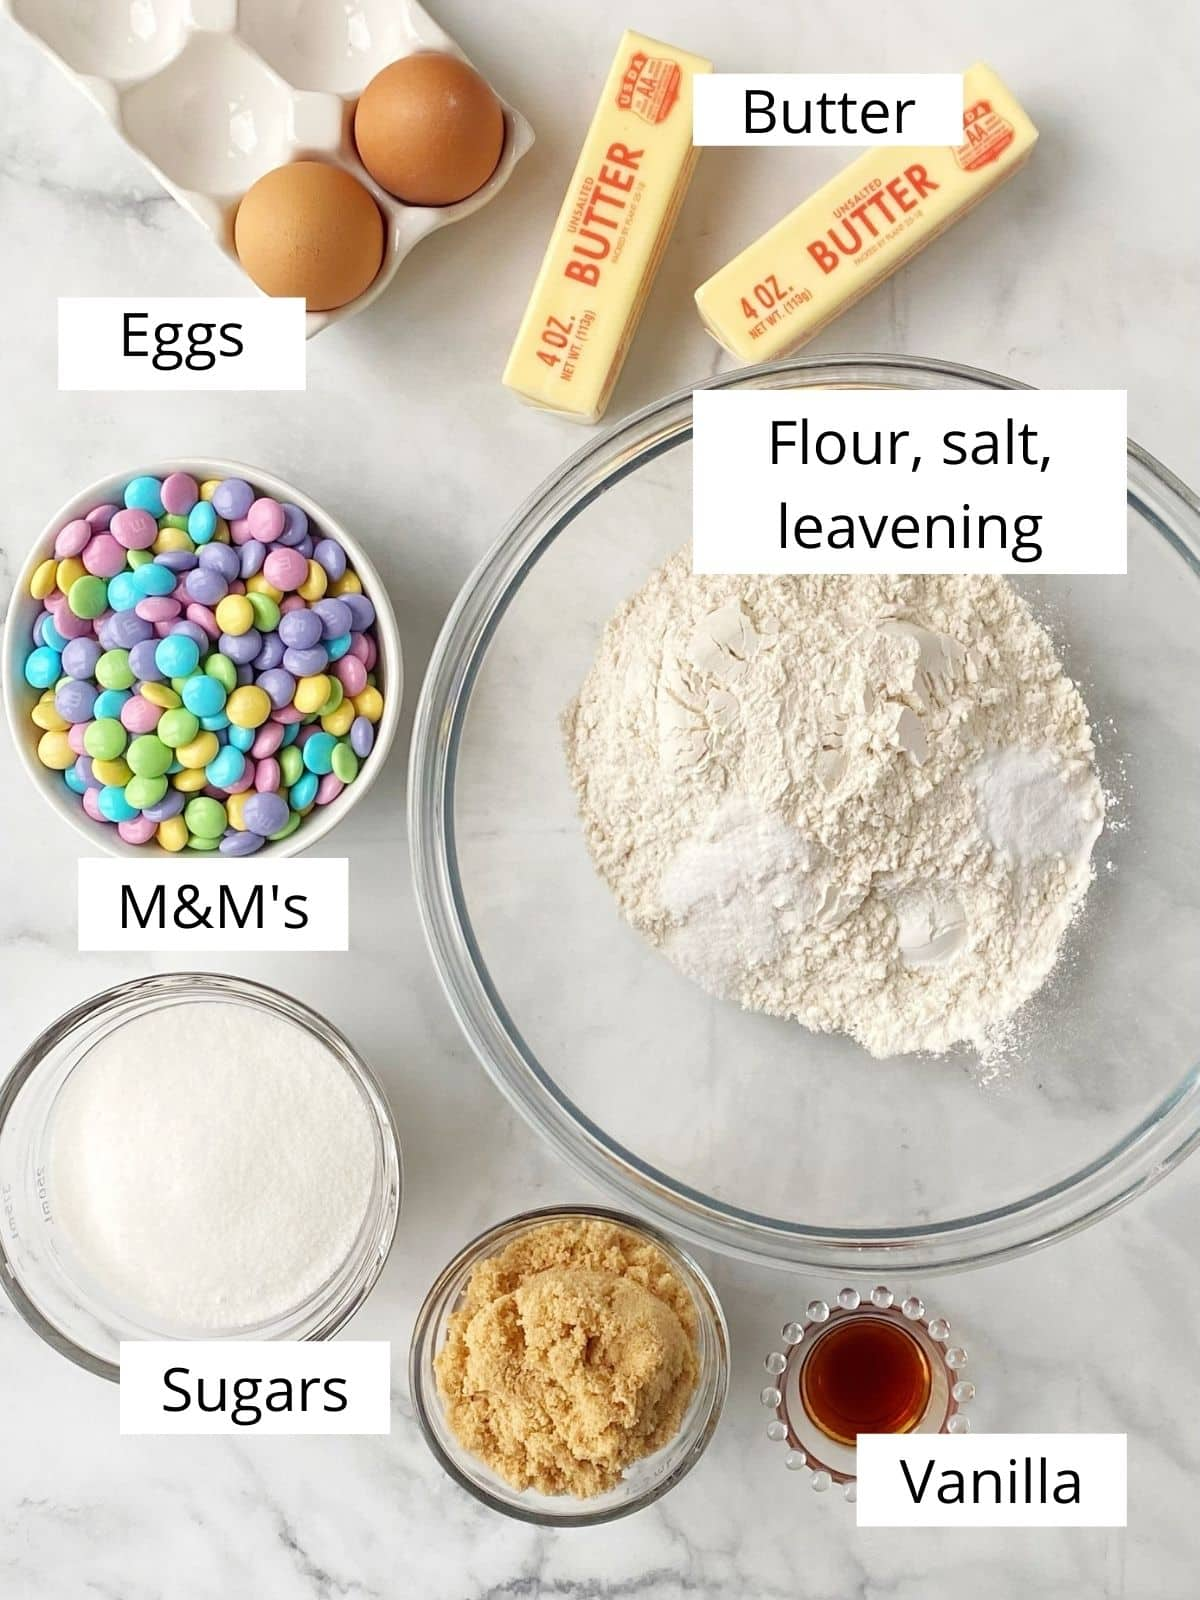 array of ingredients - eggs, butter, flour, sugars, salt, vanilla, leavening, chocolate candies